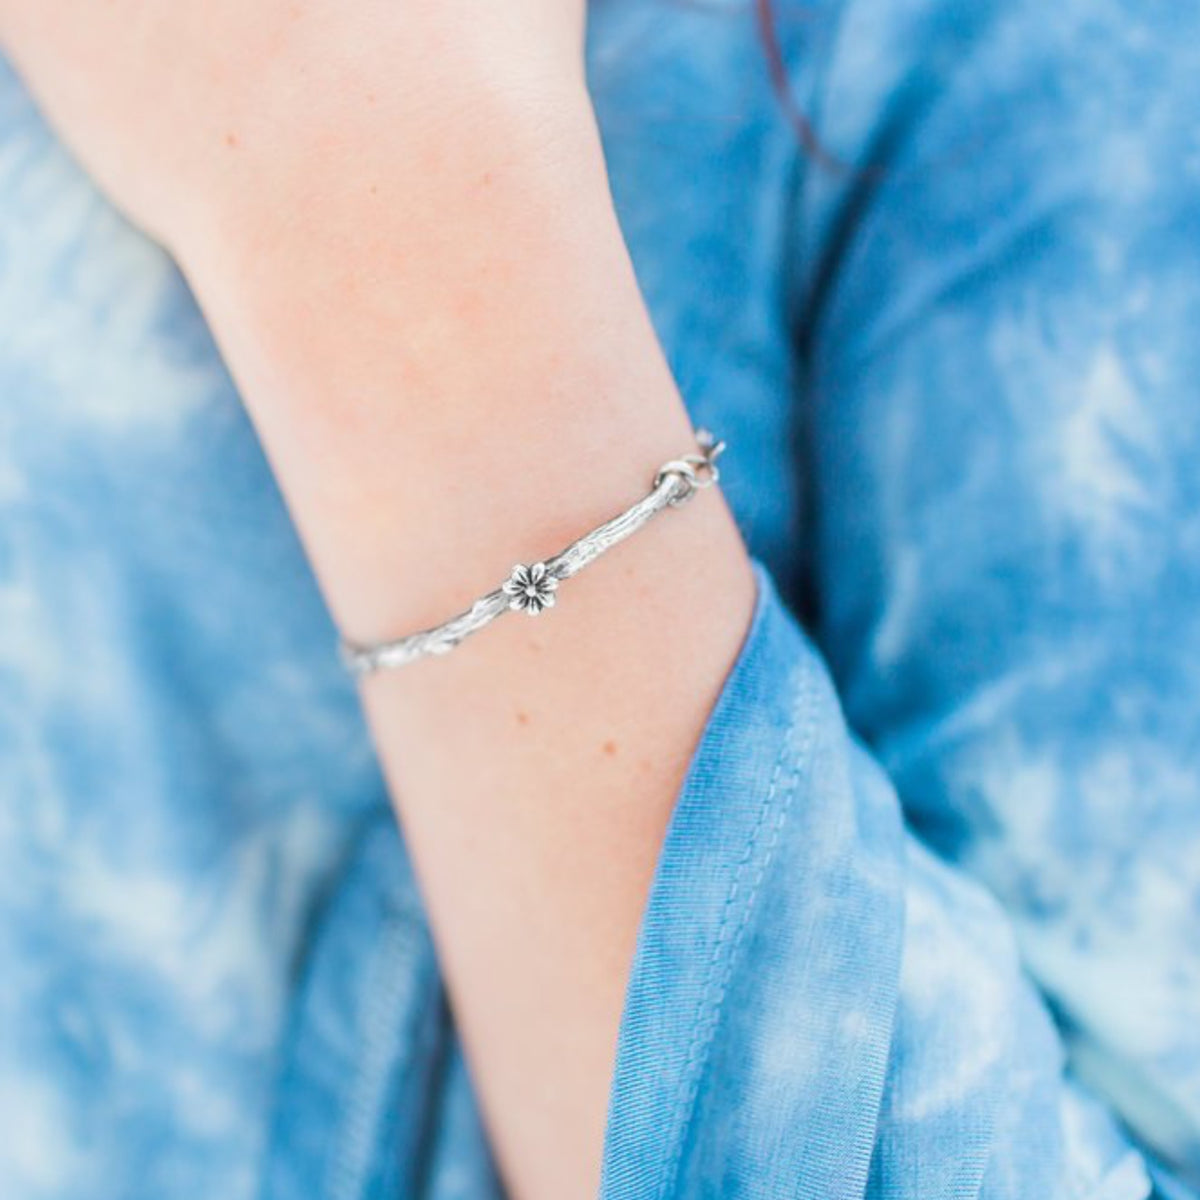 Branch Twig Bracelet with Cherry Blossom photographed on a model who is wearing a blue top